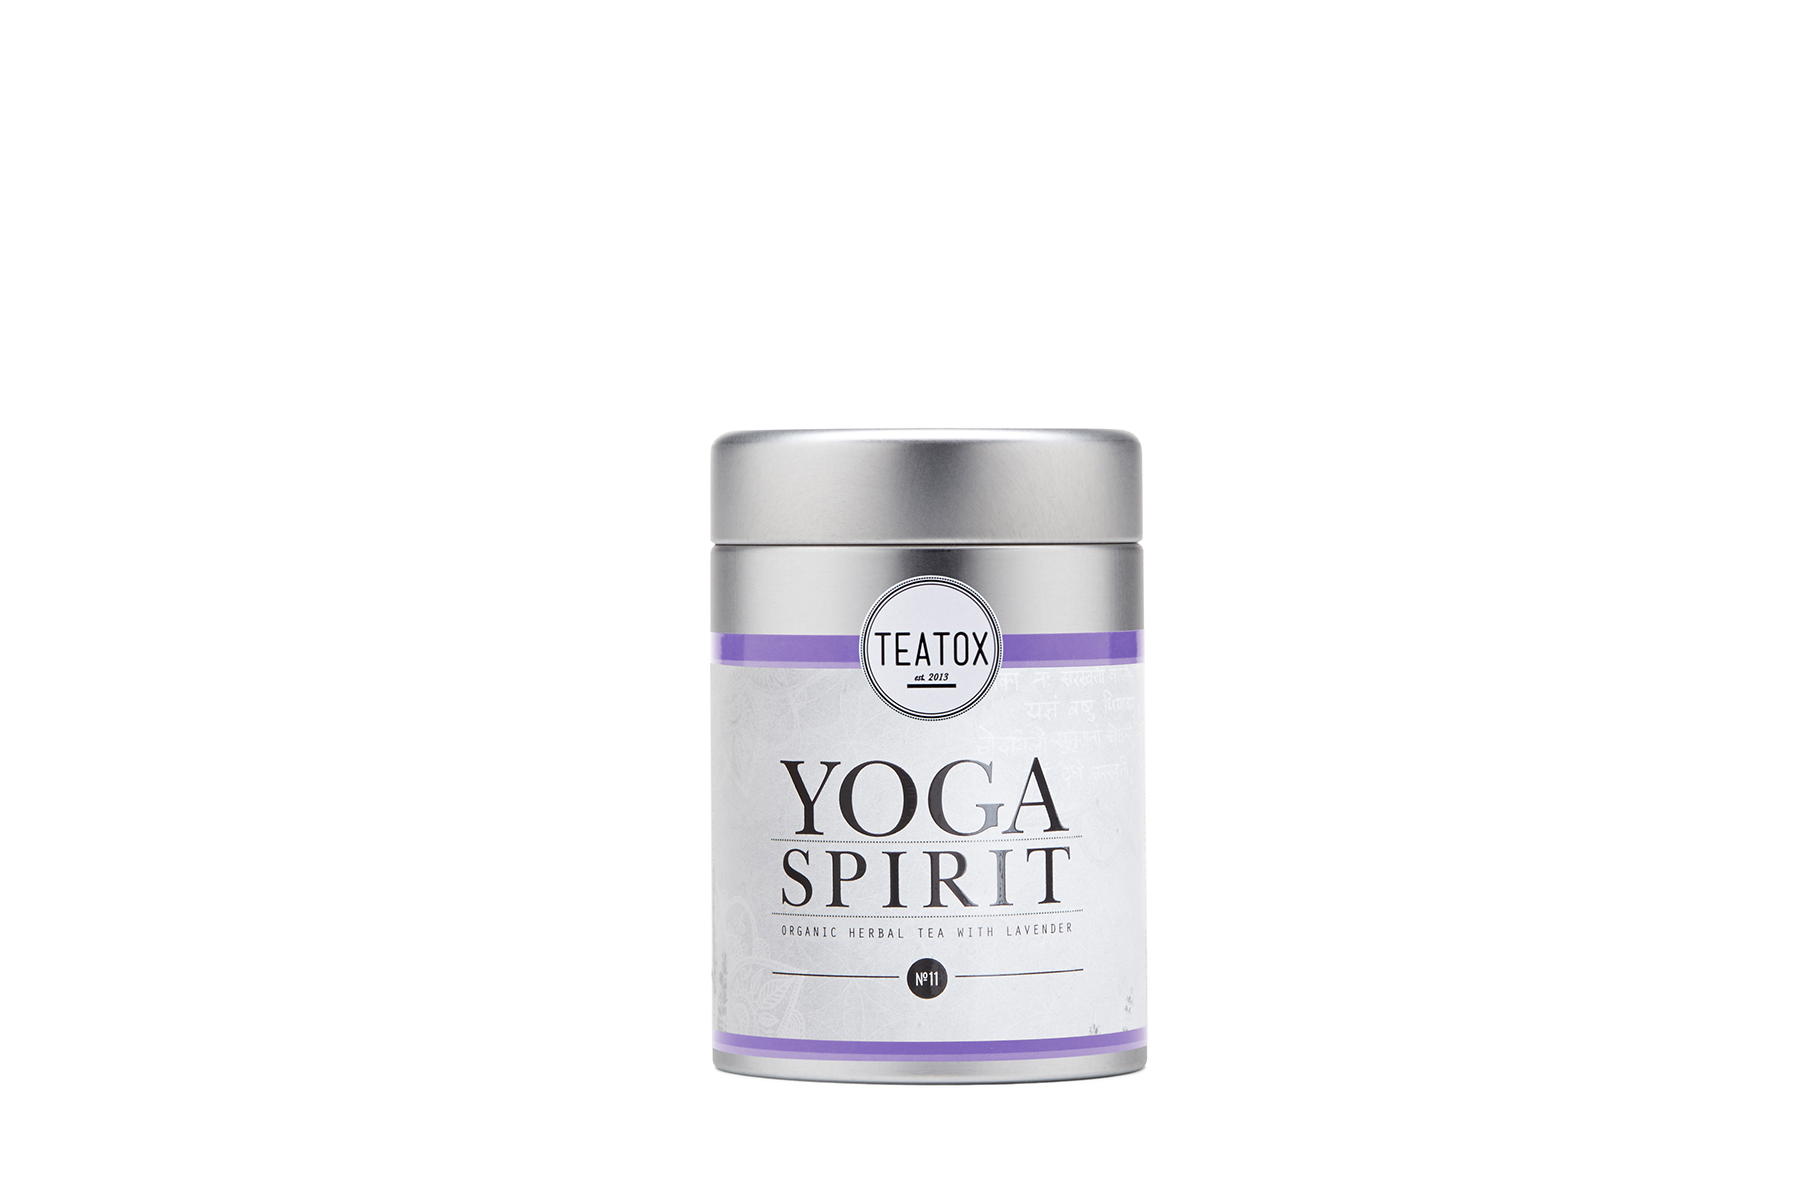 yoga_spirit_skinsations_teatox